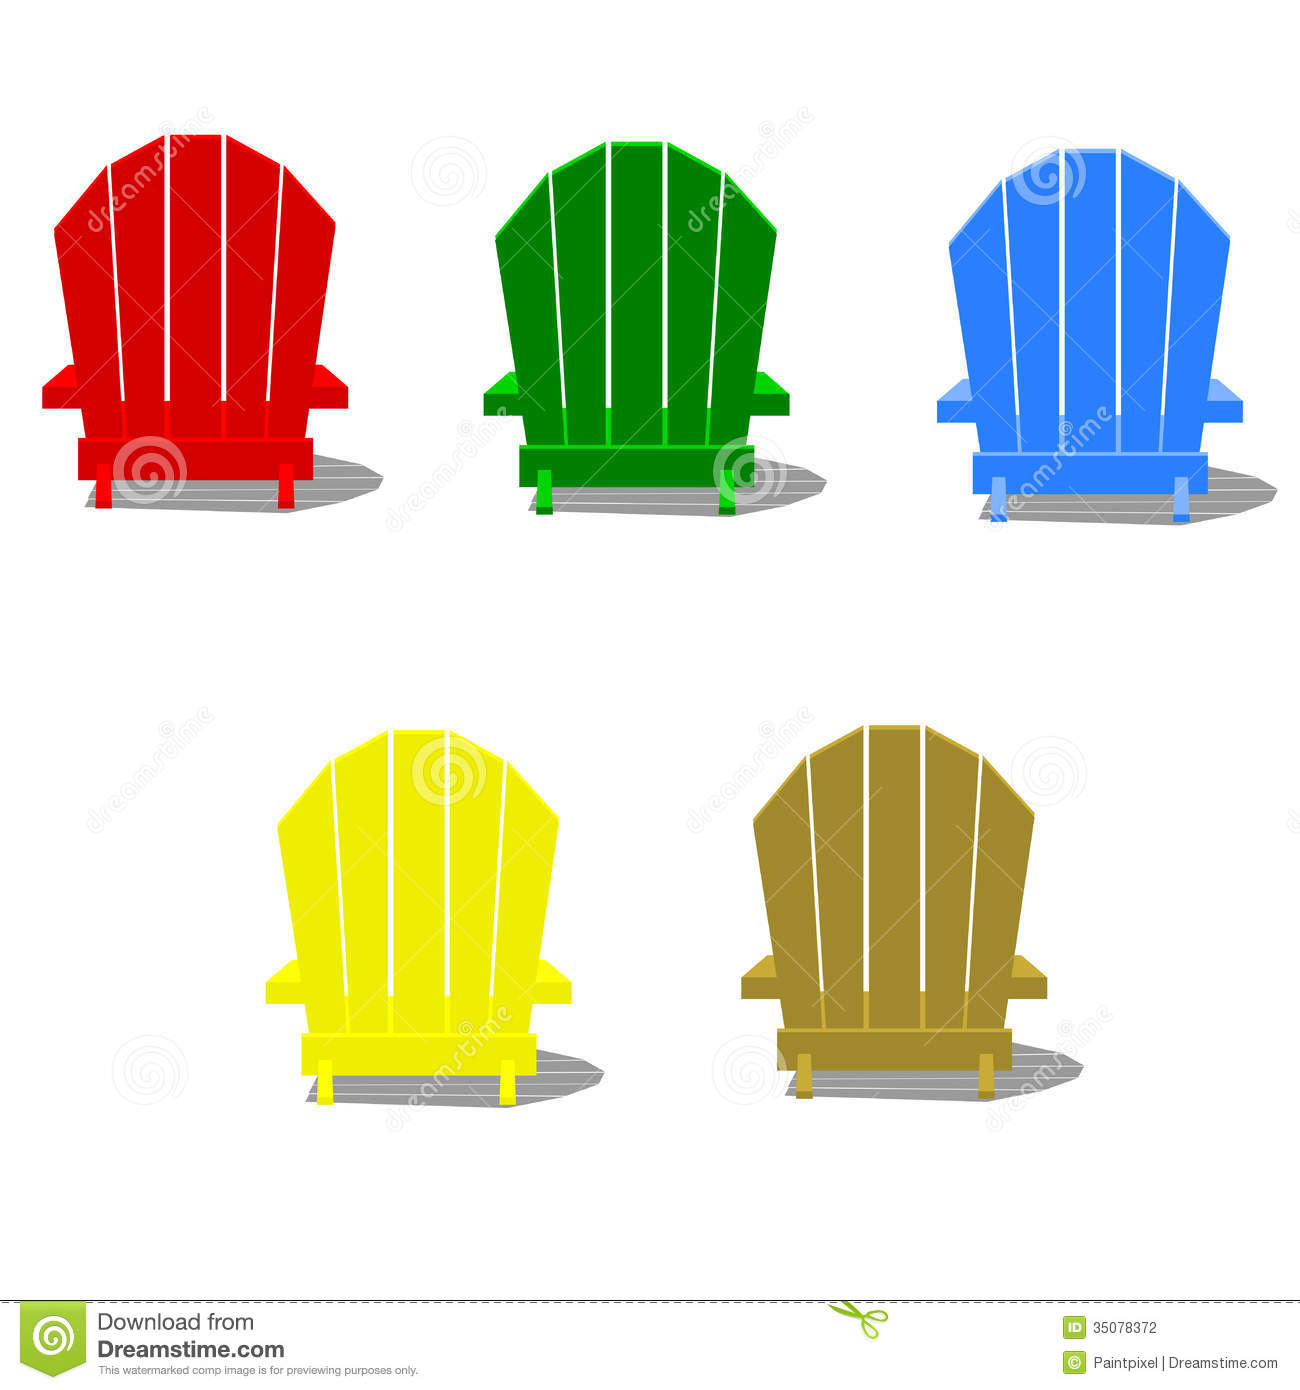 Colorful Muskoka Chairs stock vector. Illustration of blue ...